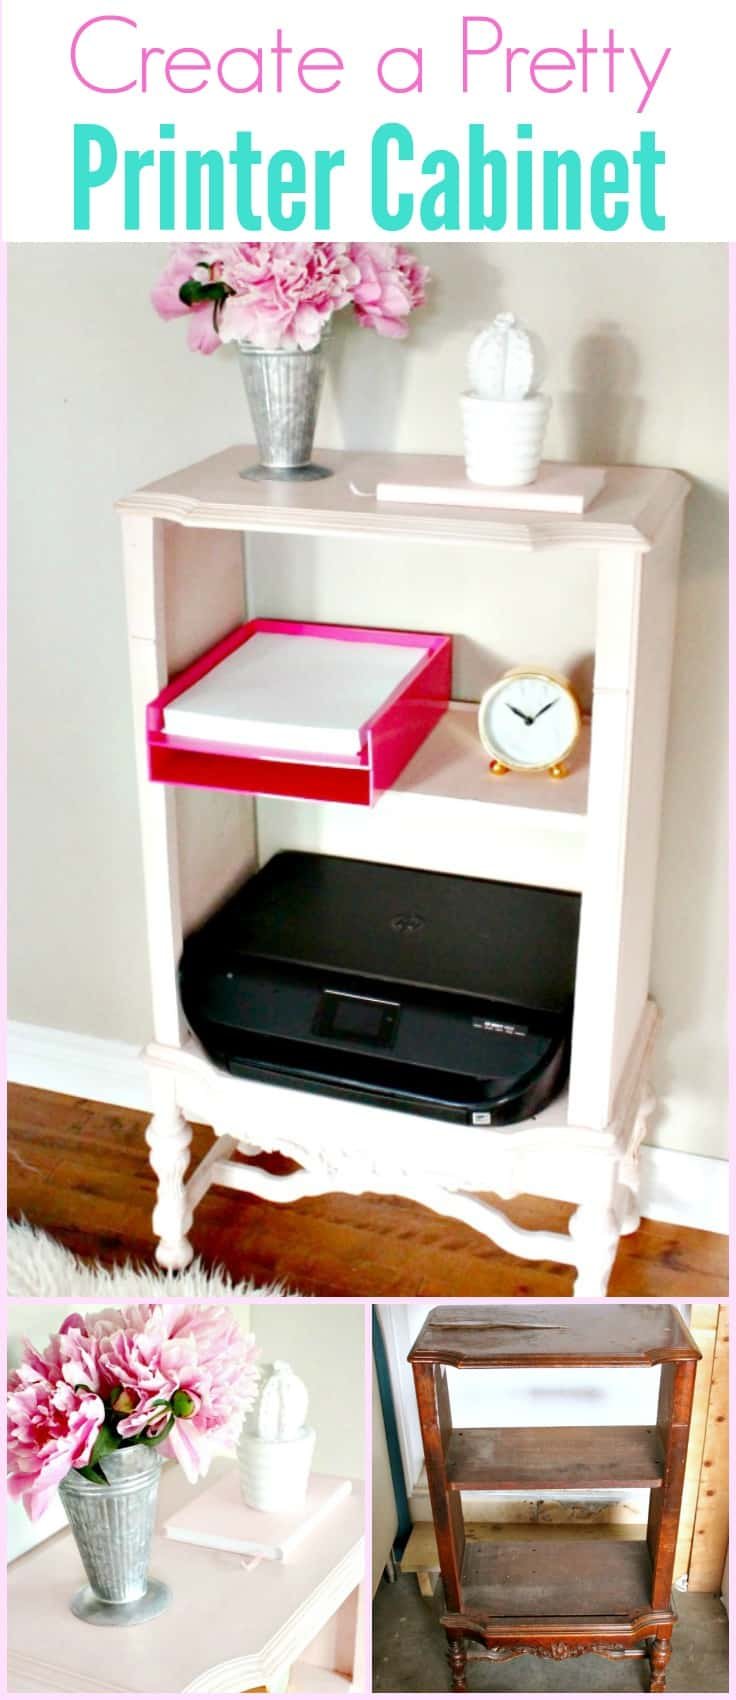 A Home office printer cabinet, made from an upcycled old broken cabinet.